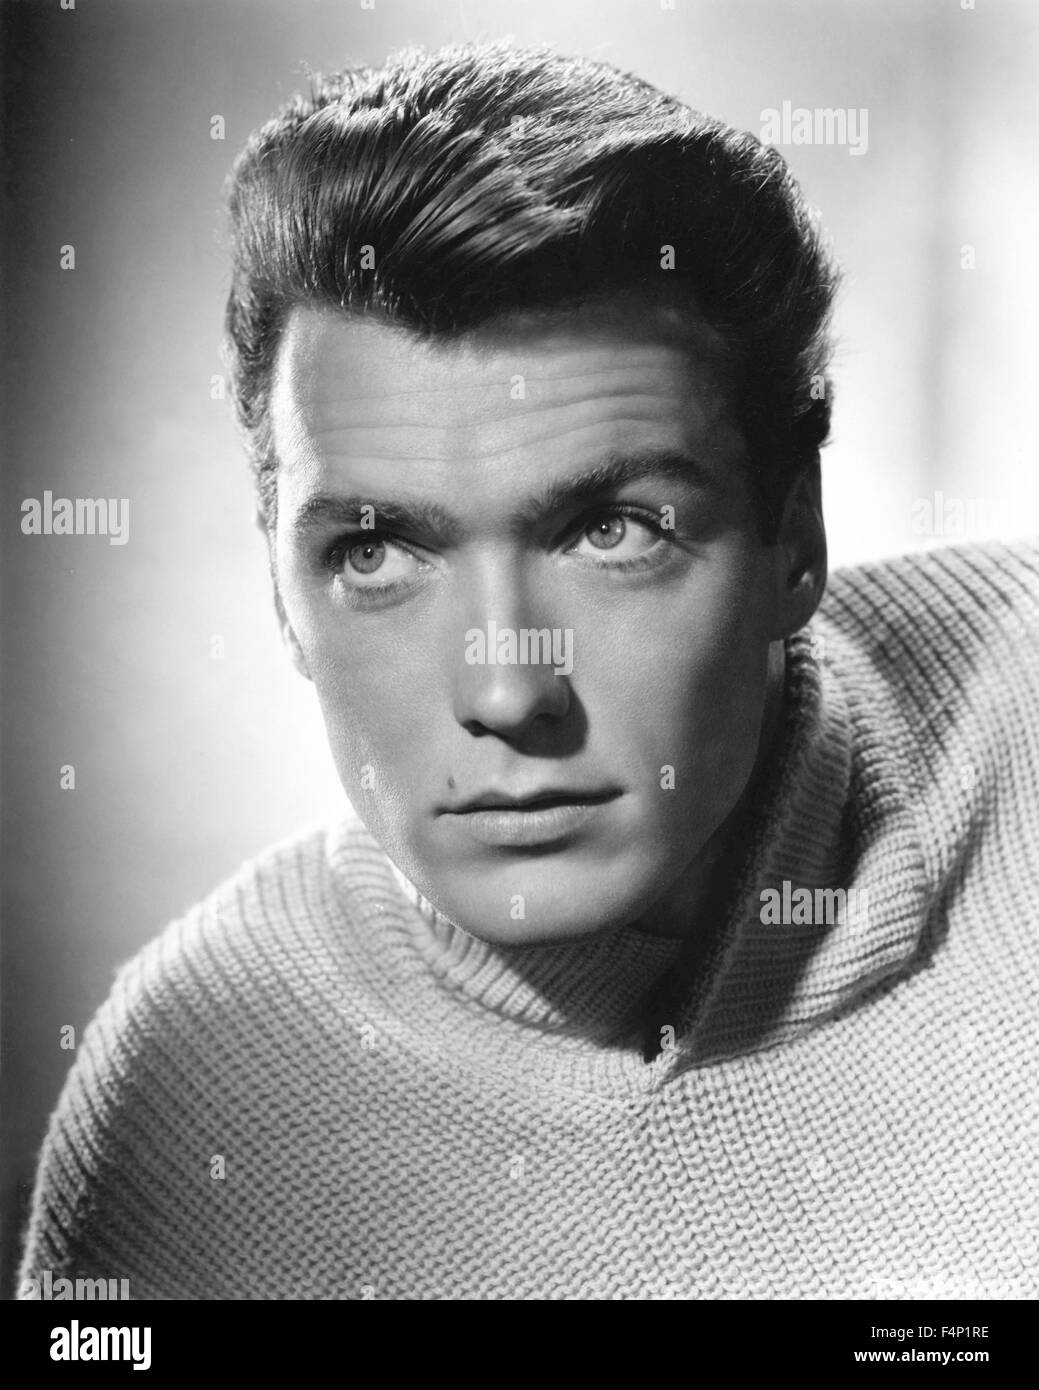 The 50 Best Fashion Tips Of All Time: Clint Eastwood In The 50's Stock Photo: 88994850